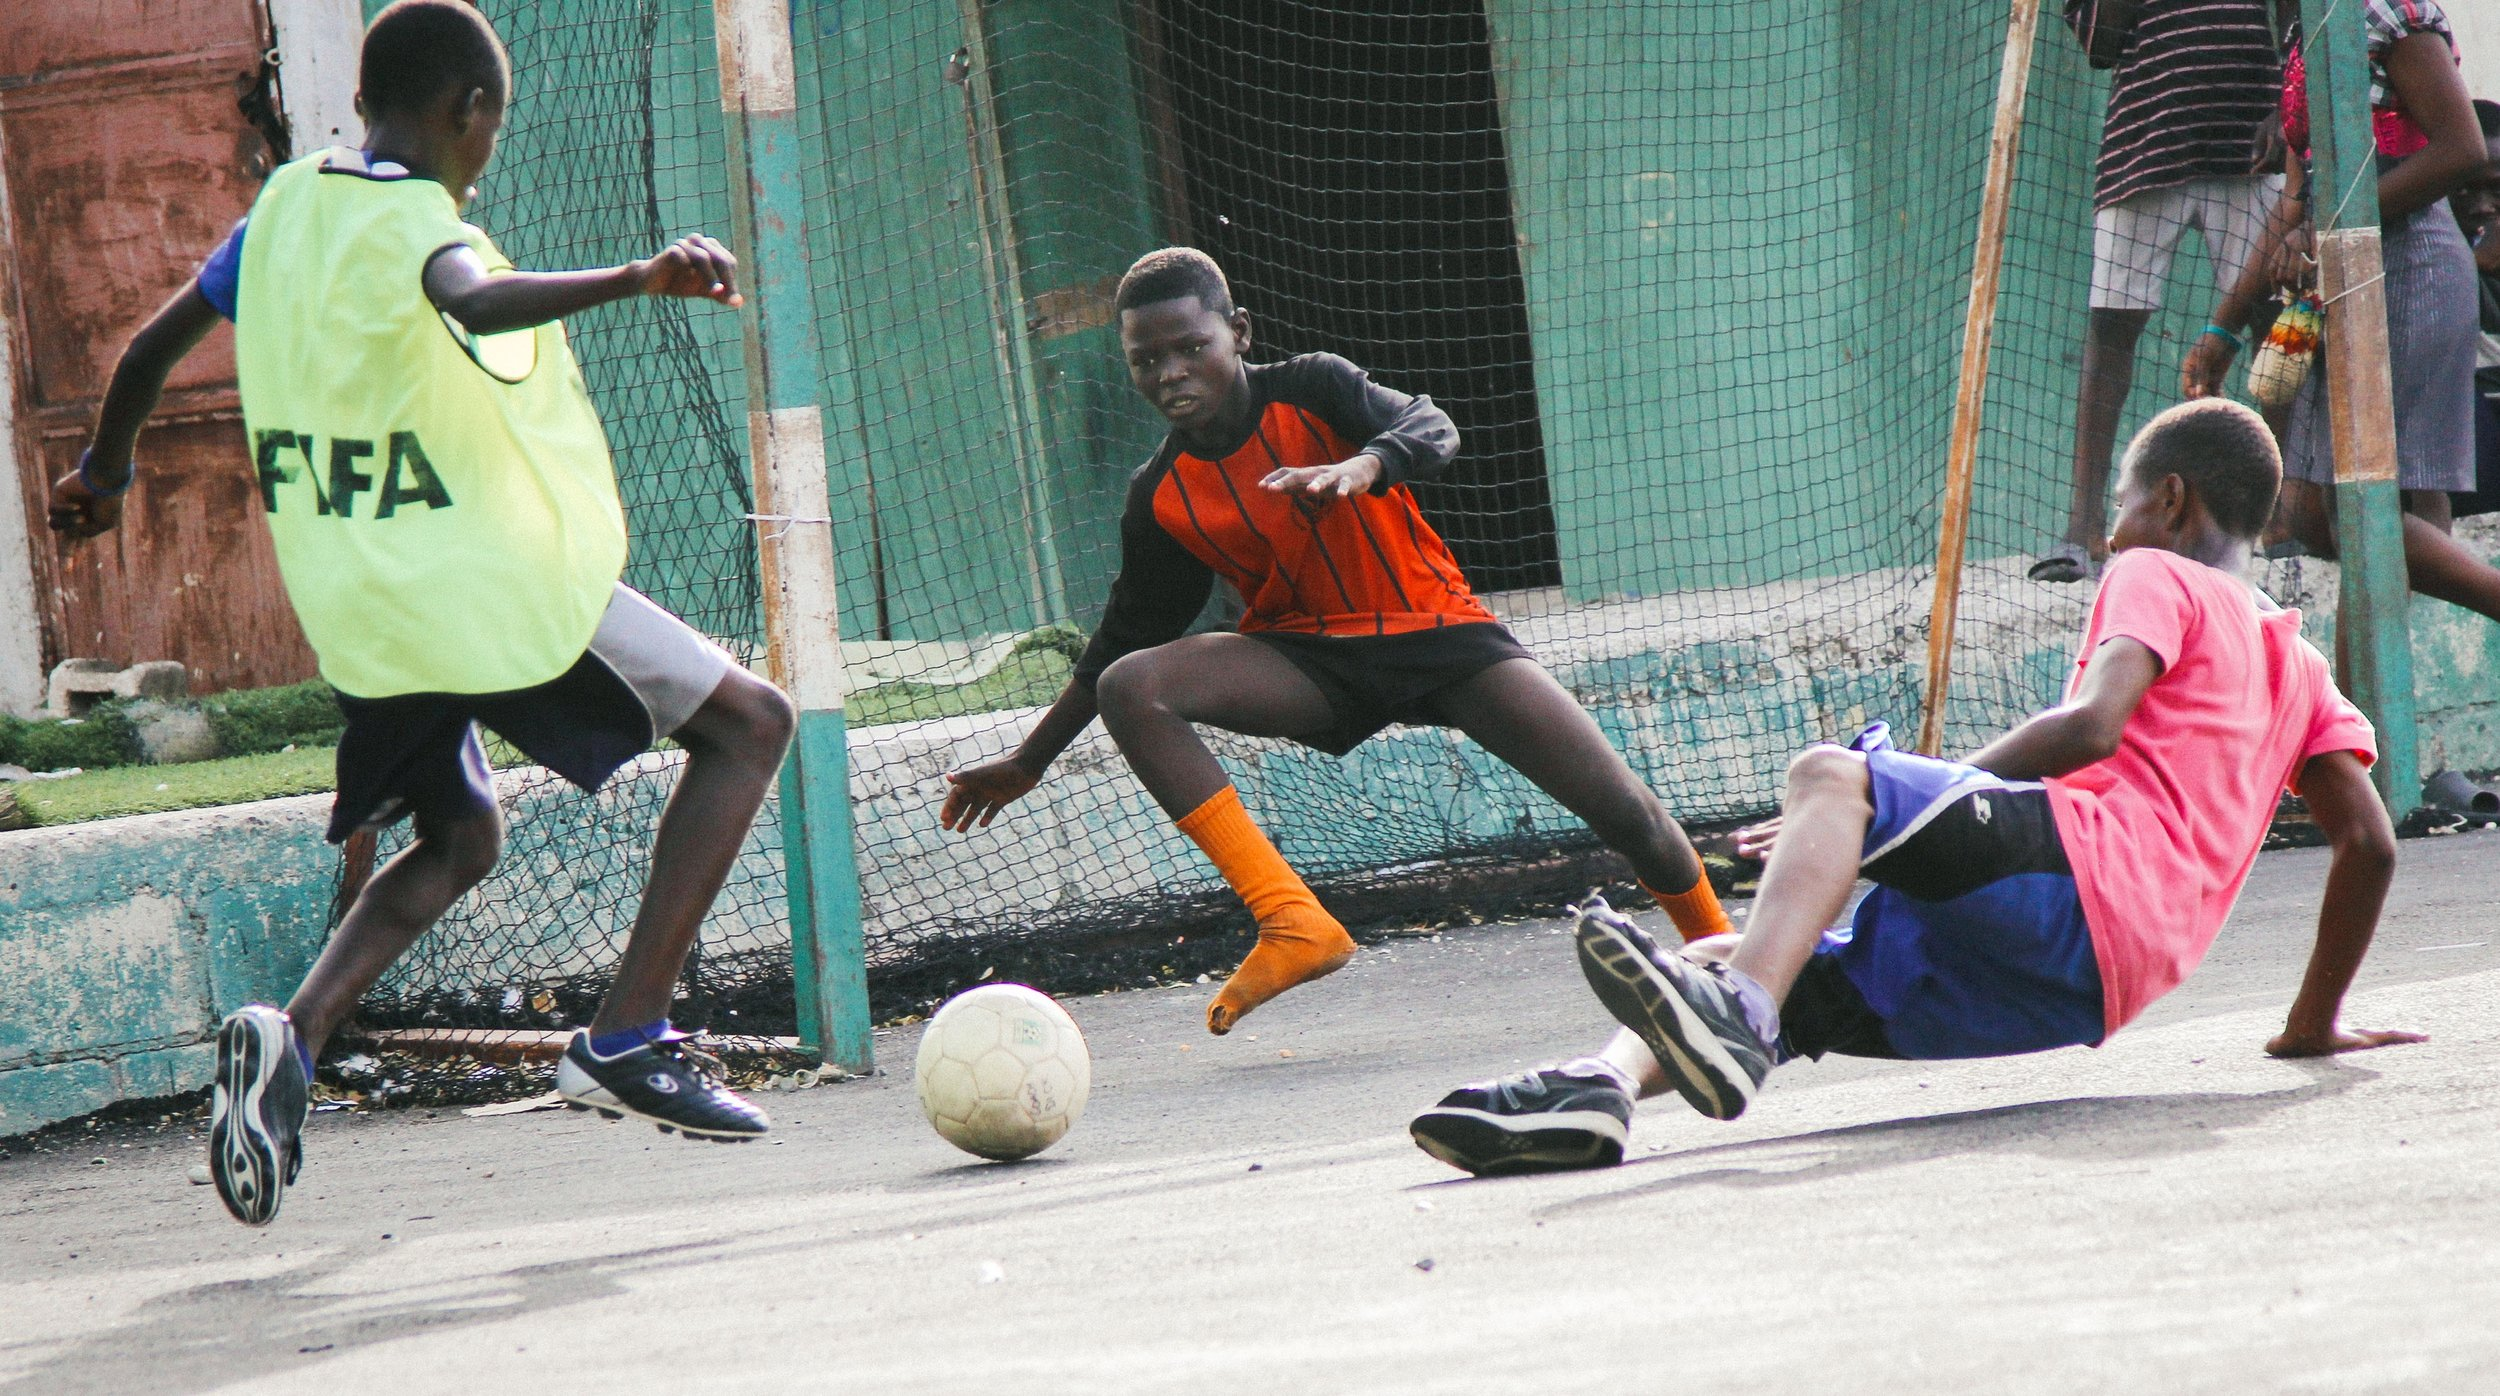 Participants play soccer at the SAKALA community in Cité Soleil.